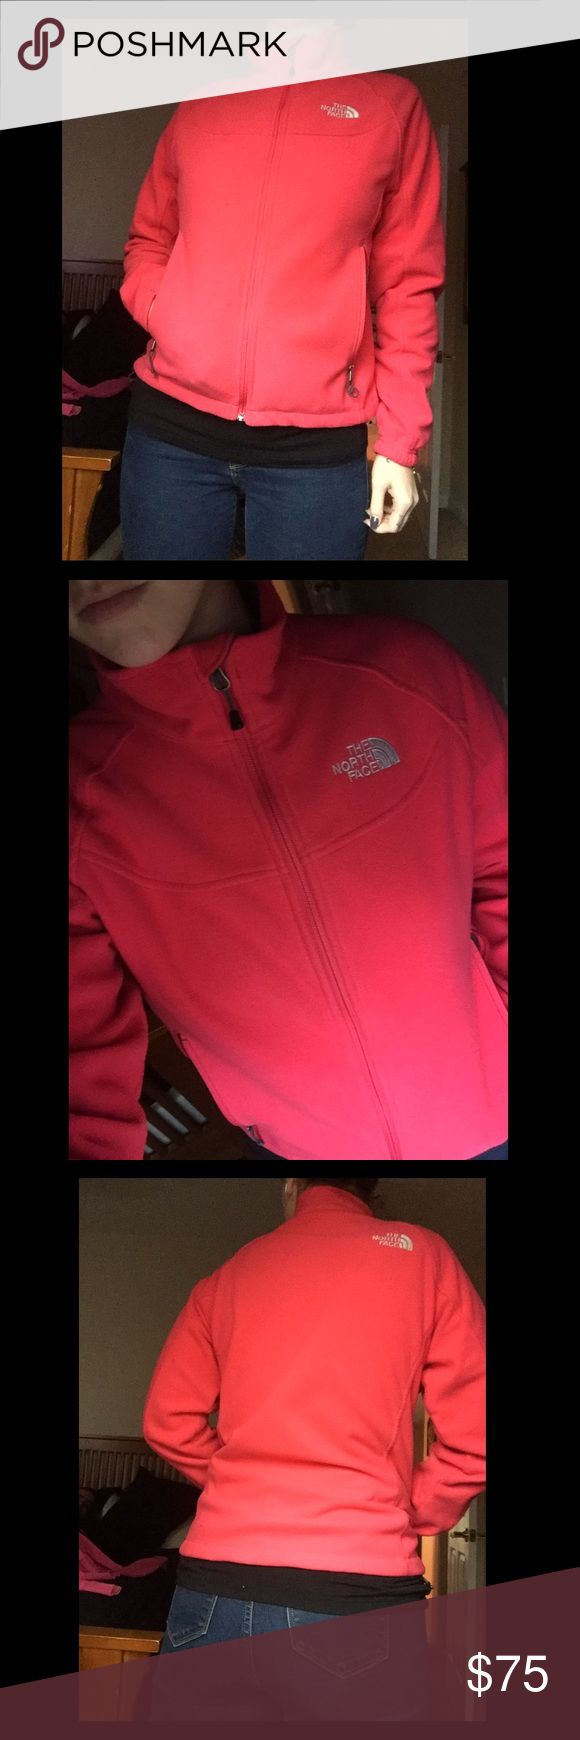 Pink North Face Fleece Hot pink North Face. In great condition  other than small burn holes from a bone fire. Super warm and comfy The North Face Jackets & Coats